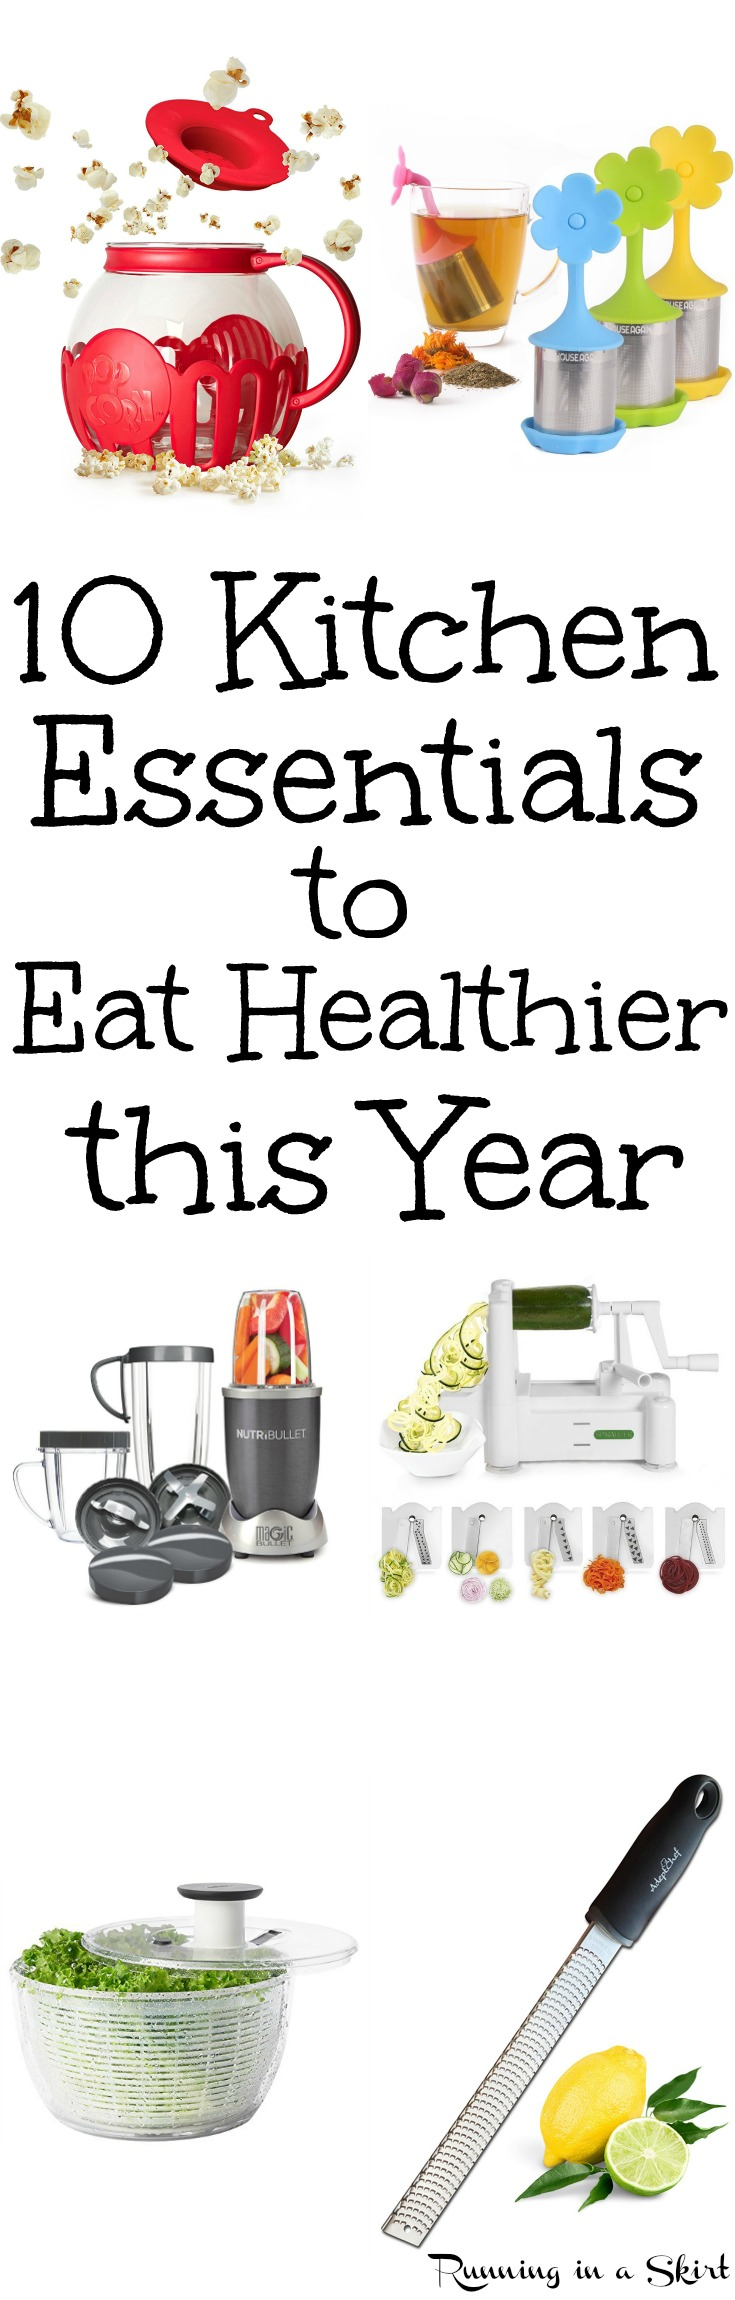 10 Healthy Kitchen Gadgets and Tools to Eat Healthier for Life.  These run ideas and products can make cooking easier and better for your health.  Great home tools for clean eating, cooking veggies, vegetable noodles for low carb diets and following recipe ideas. / Running in a Skirt via @juliewunder